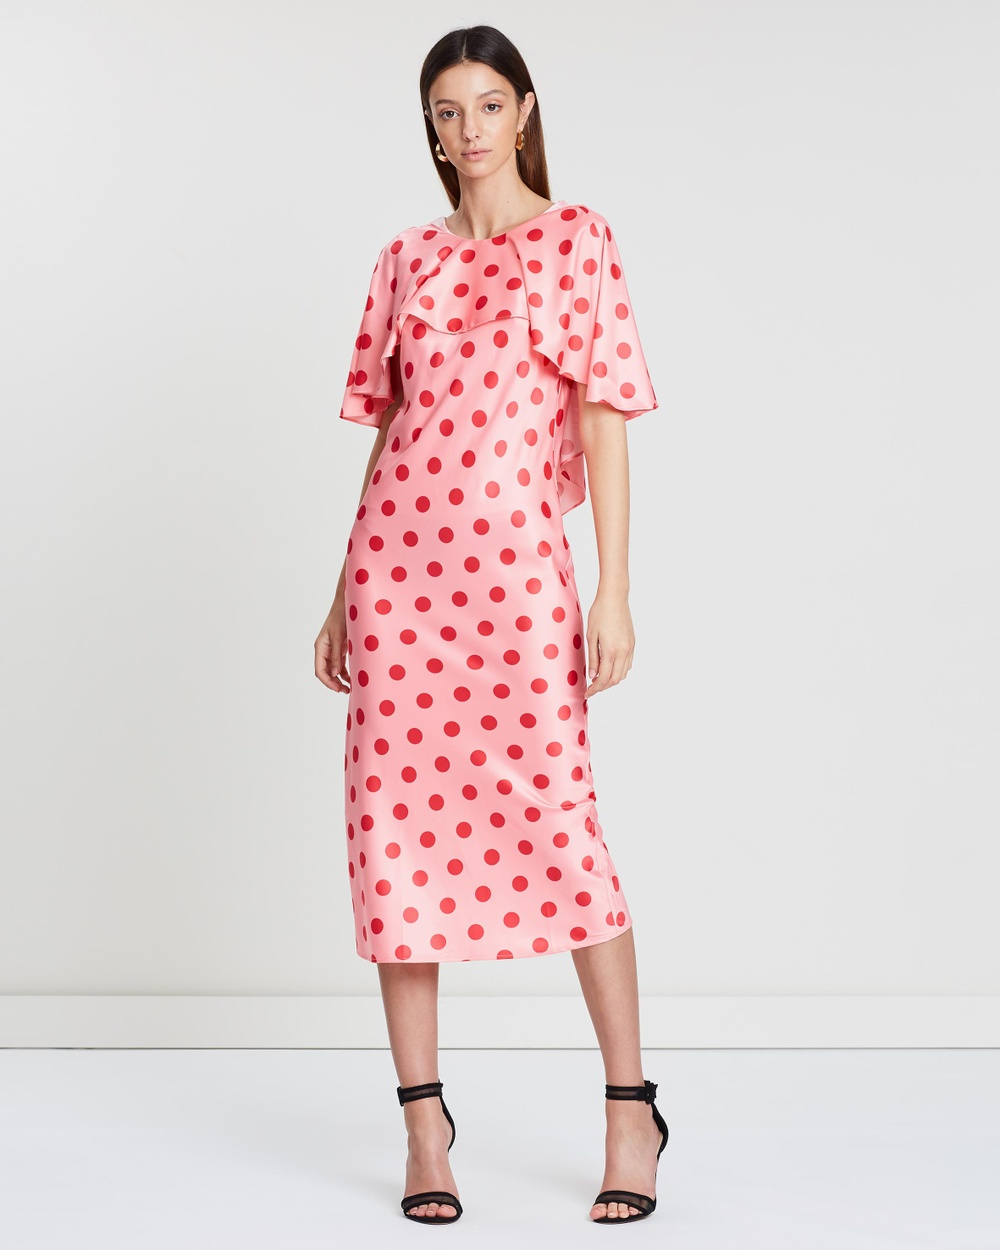 Gary Bigeni Red Polka Dot Jure Dress